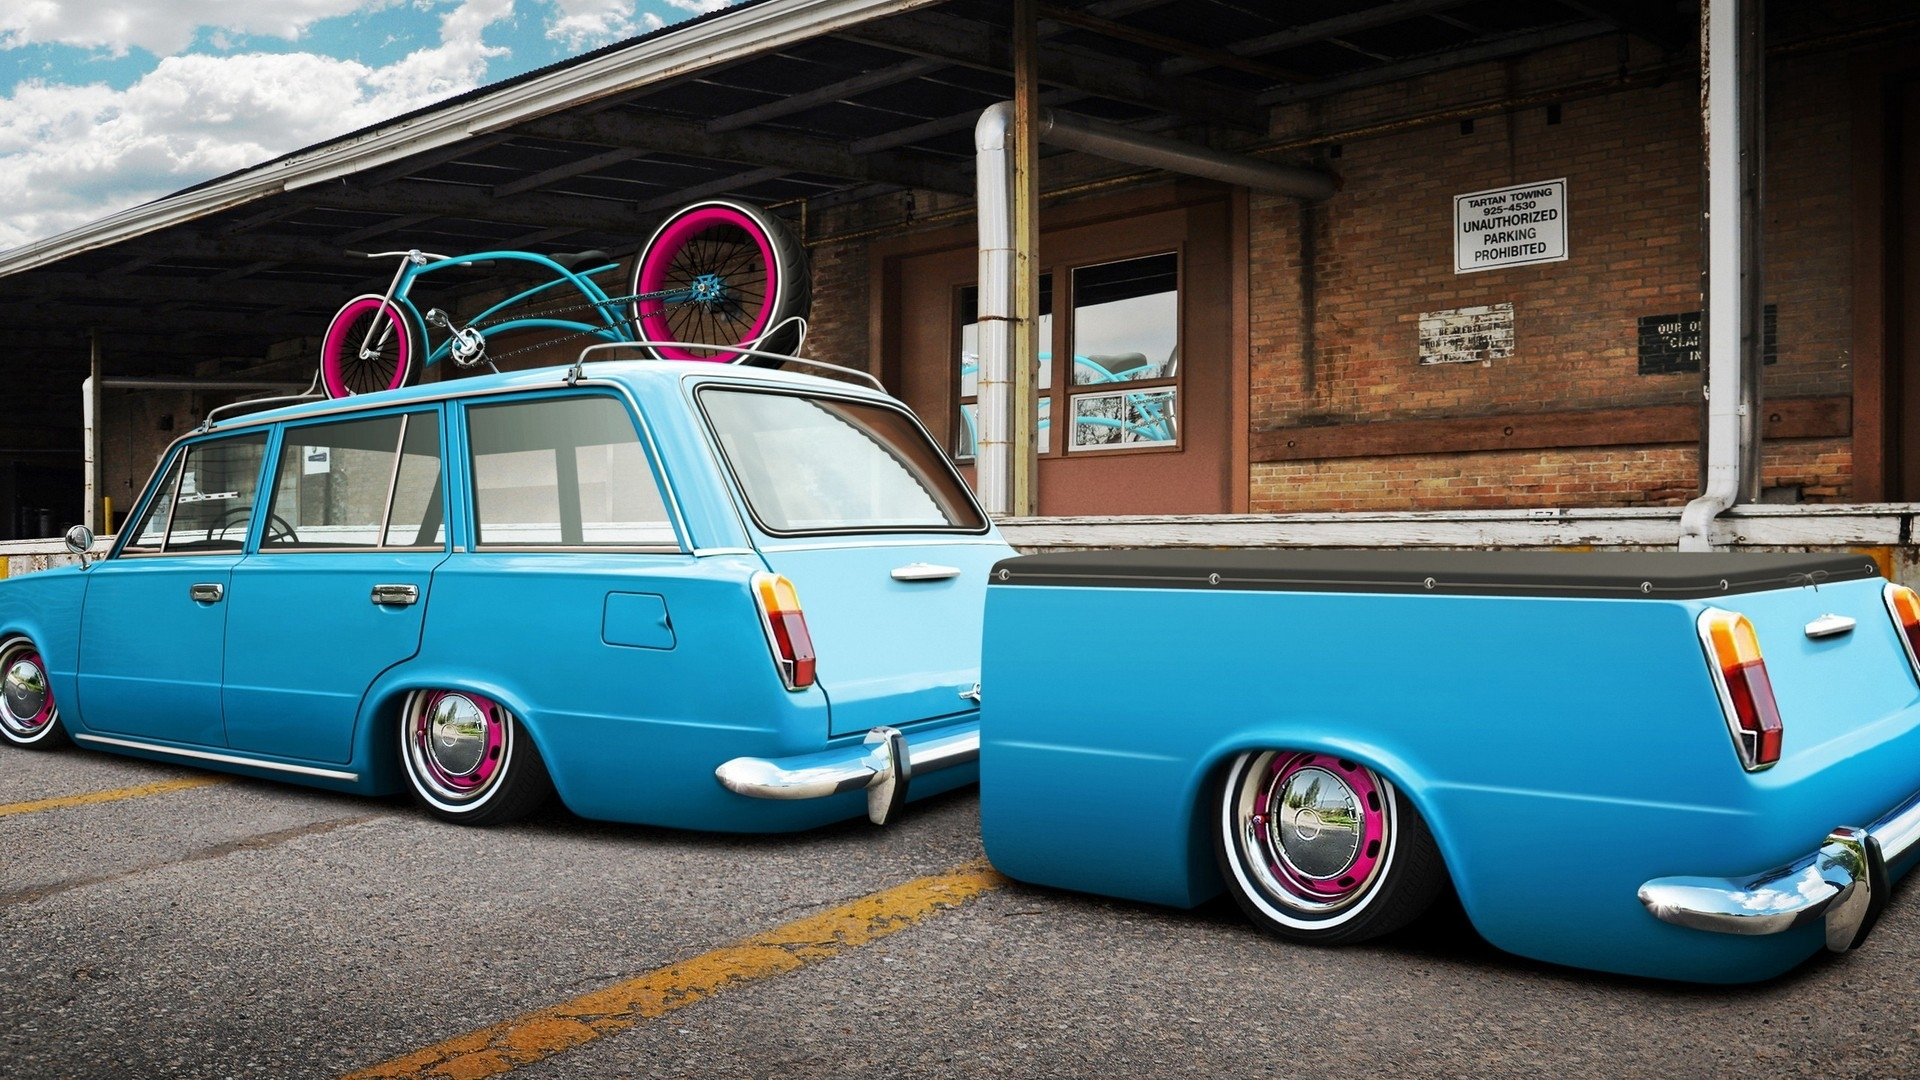 Lada lowrider Full HD Wallpaper and Background Image ...